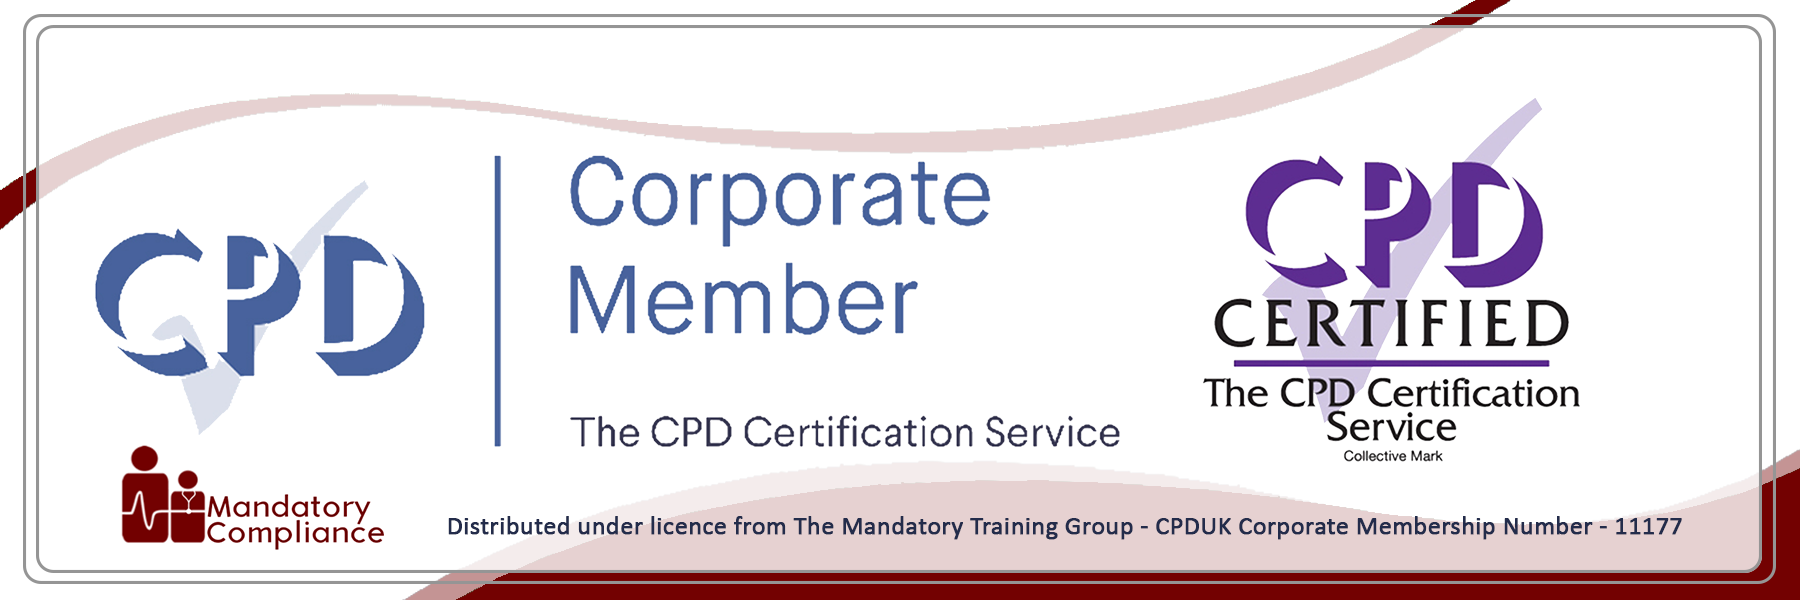 Blood Component Transfusion - Online Training Course - CPDUK Accredited - Mandatory Compliance UK -